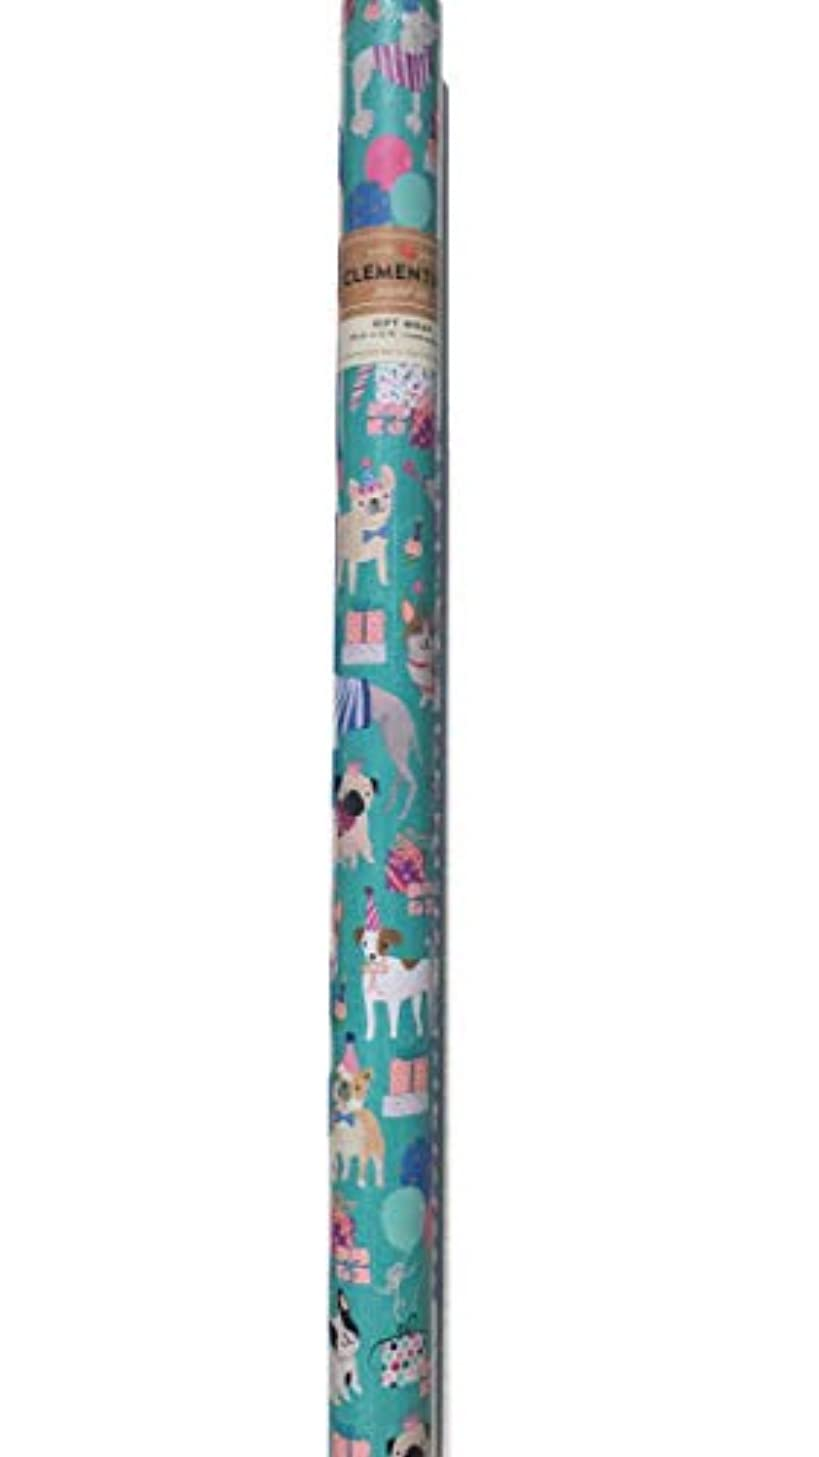 Clementine Birthday Whimsical Multi Puppy Dogs Premium Gift Wrap Continuous Paper Roll, Aqua (610068)